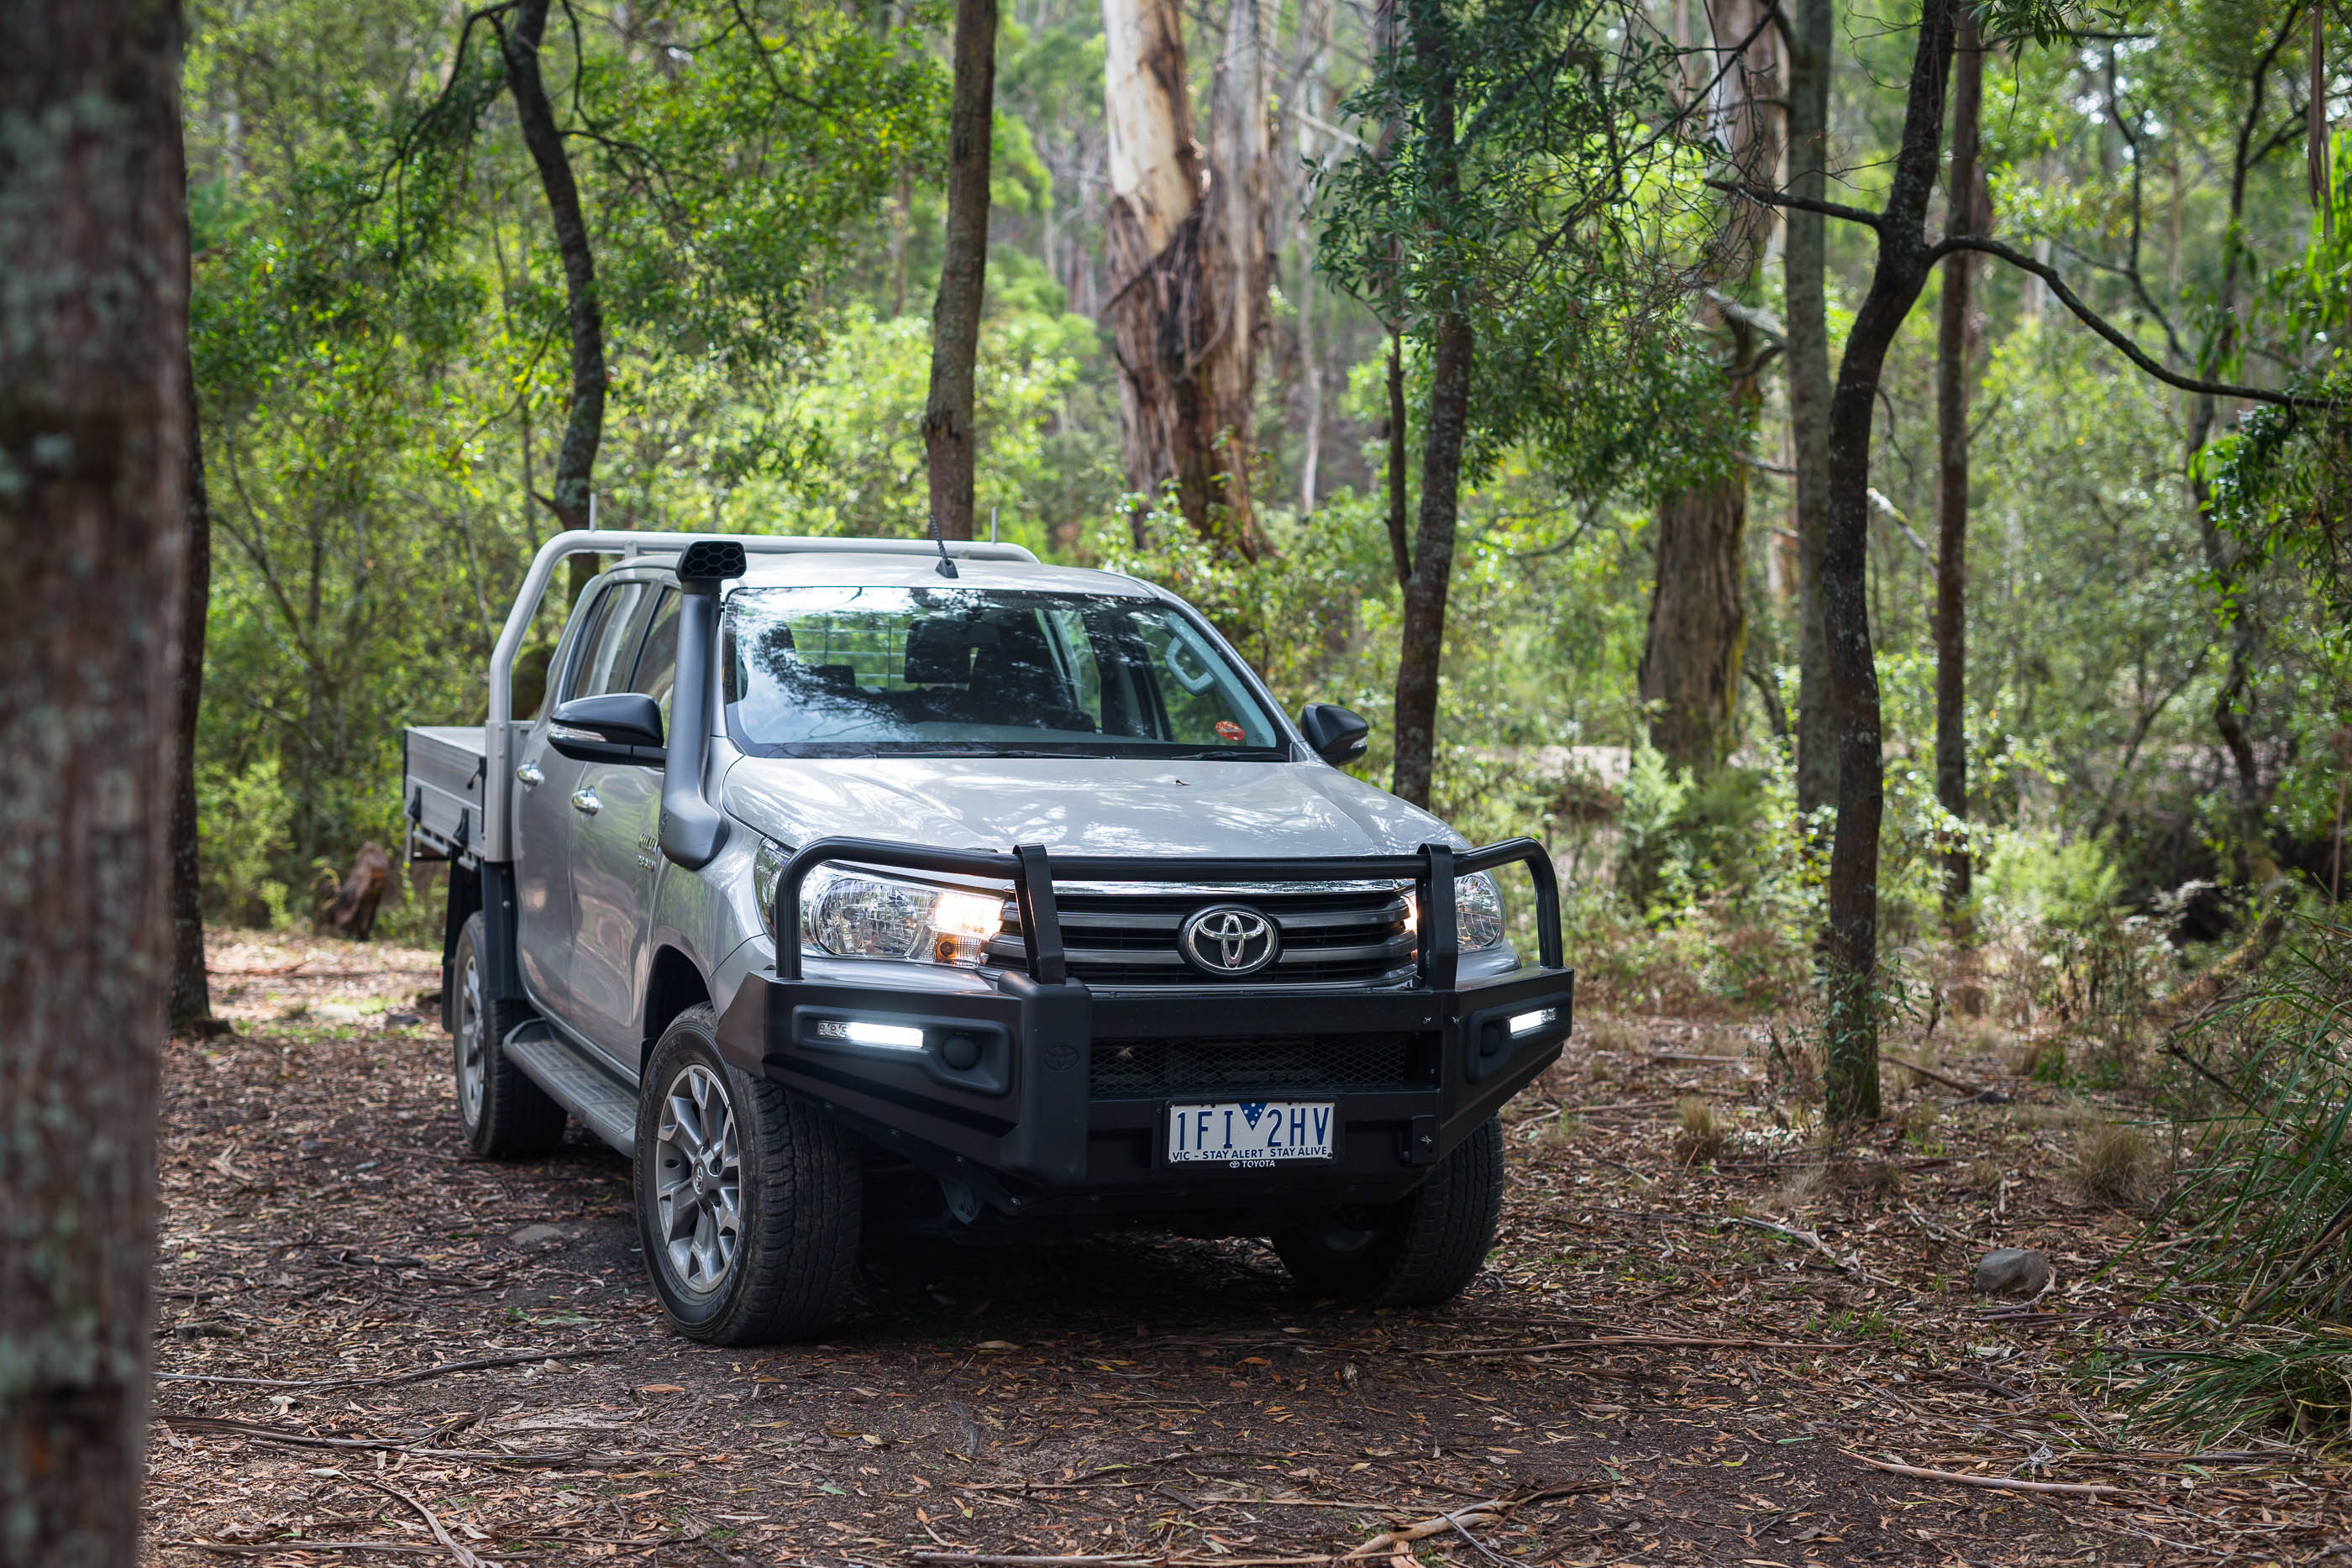 2016 toyota hilux sr 4x4 cab chassis review caradvice - 2016 Toyota Hilux Sr 4 4 Cab Chassis Review Photos Caradvice